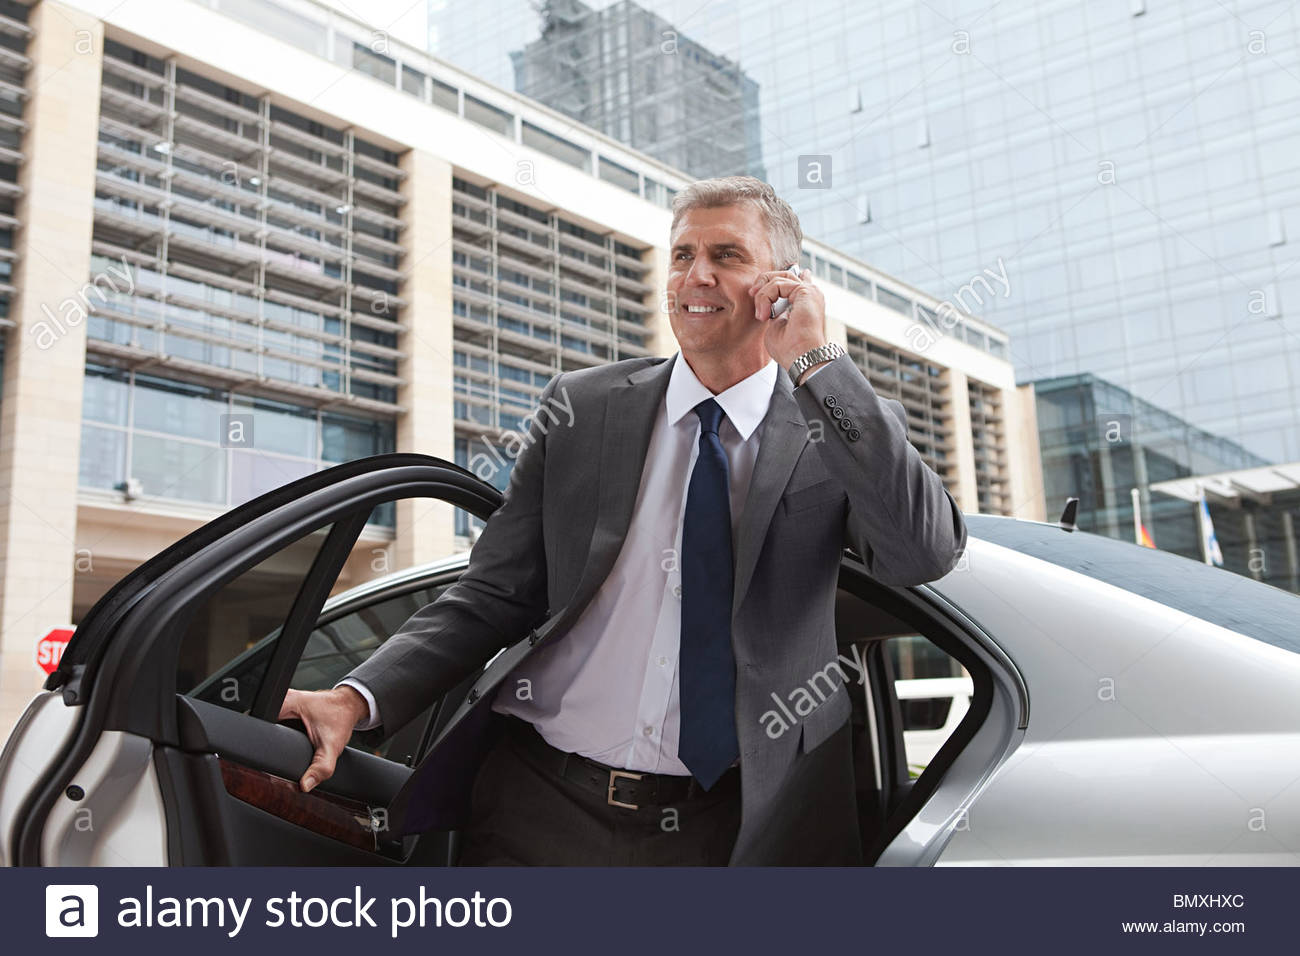 Businessman on cellphone getting out of car - Stock Image